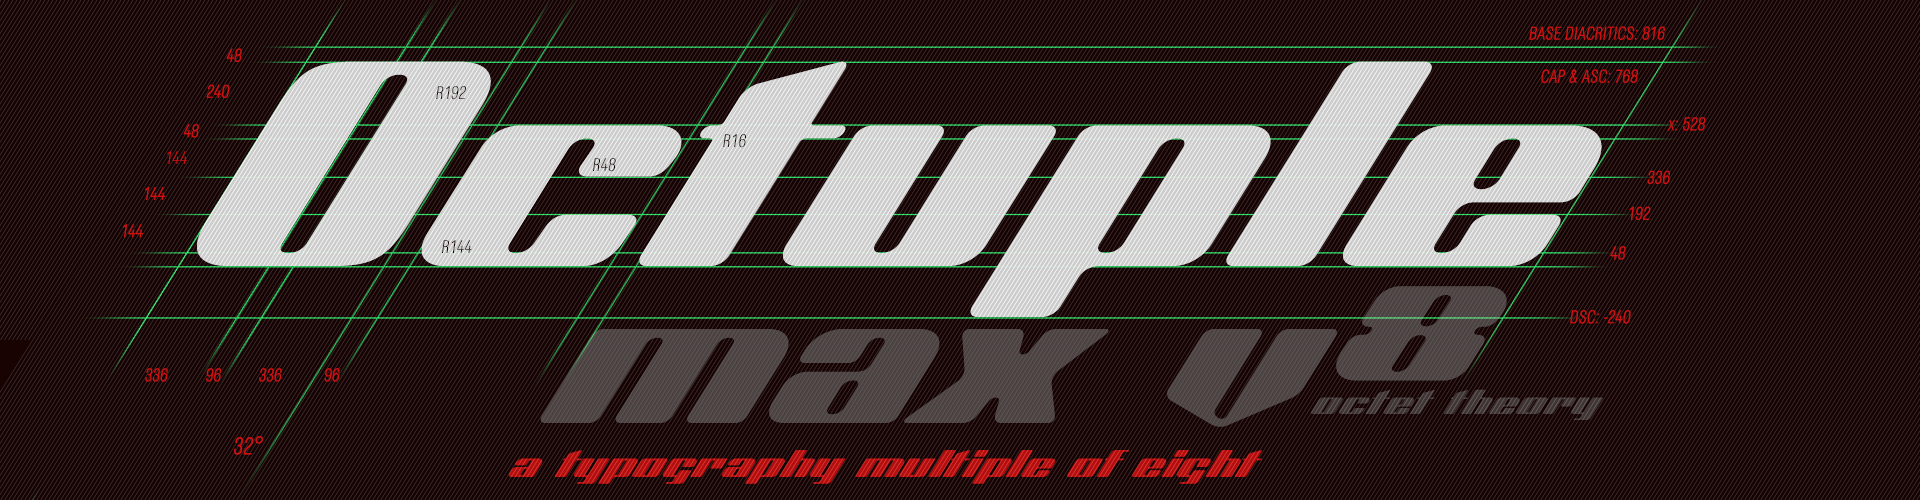 Octuple max v8 - a typography multiple of eight